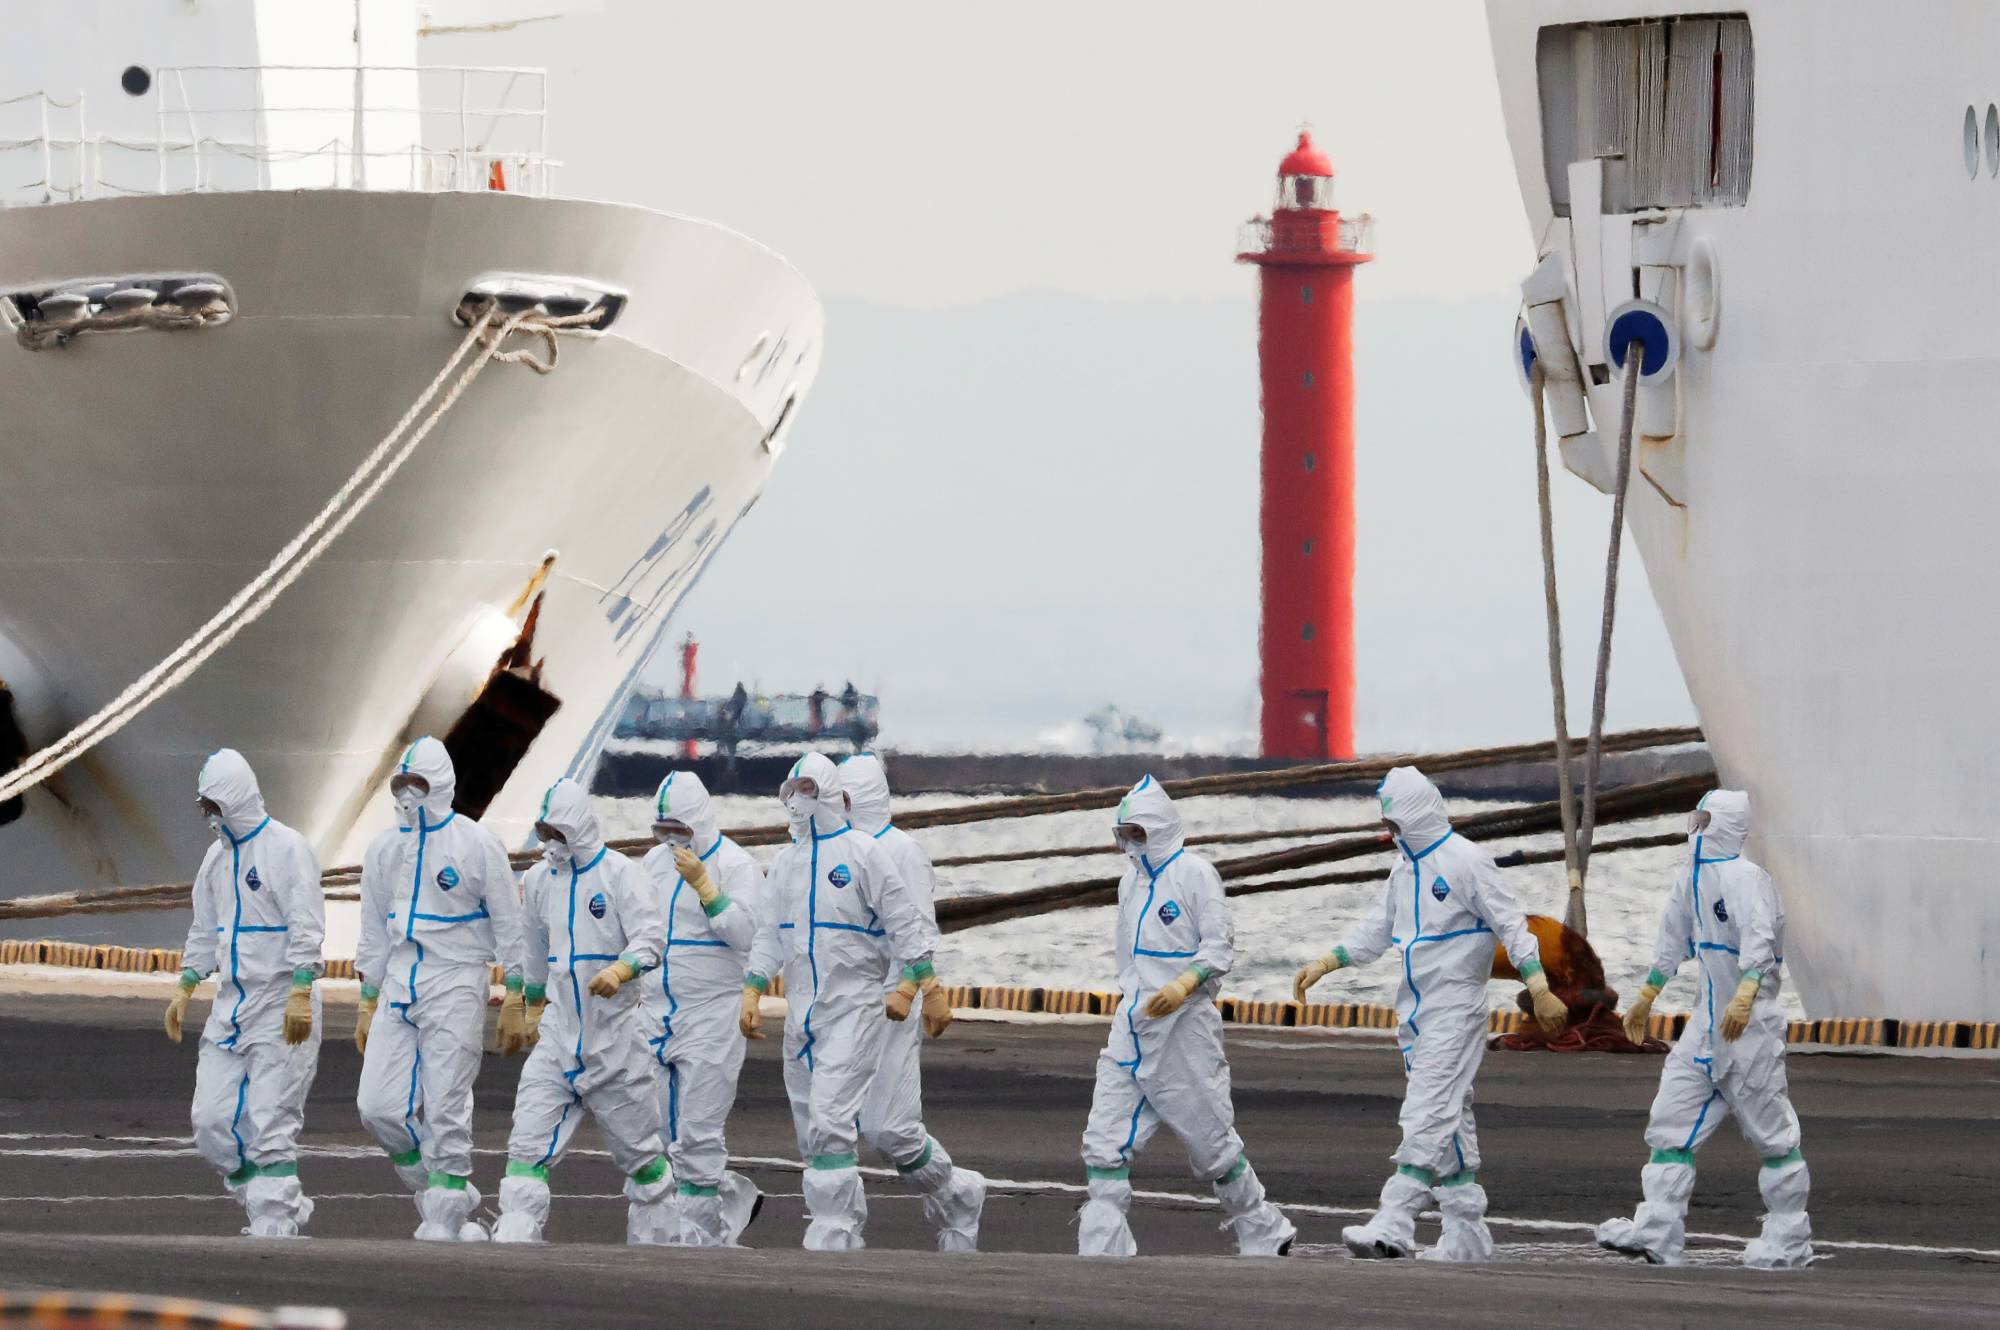 Workers wear protective gear to protect them against the COVID-19 virus near the cruise ship Diamond Princess at Daikoku Pier Cruise Terminal in Yokohama last February. More than 700 of the 3,711 people on board the ship became infected with the virus, with 14 deaths being reported. |  REUTERS